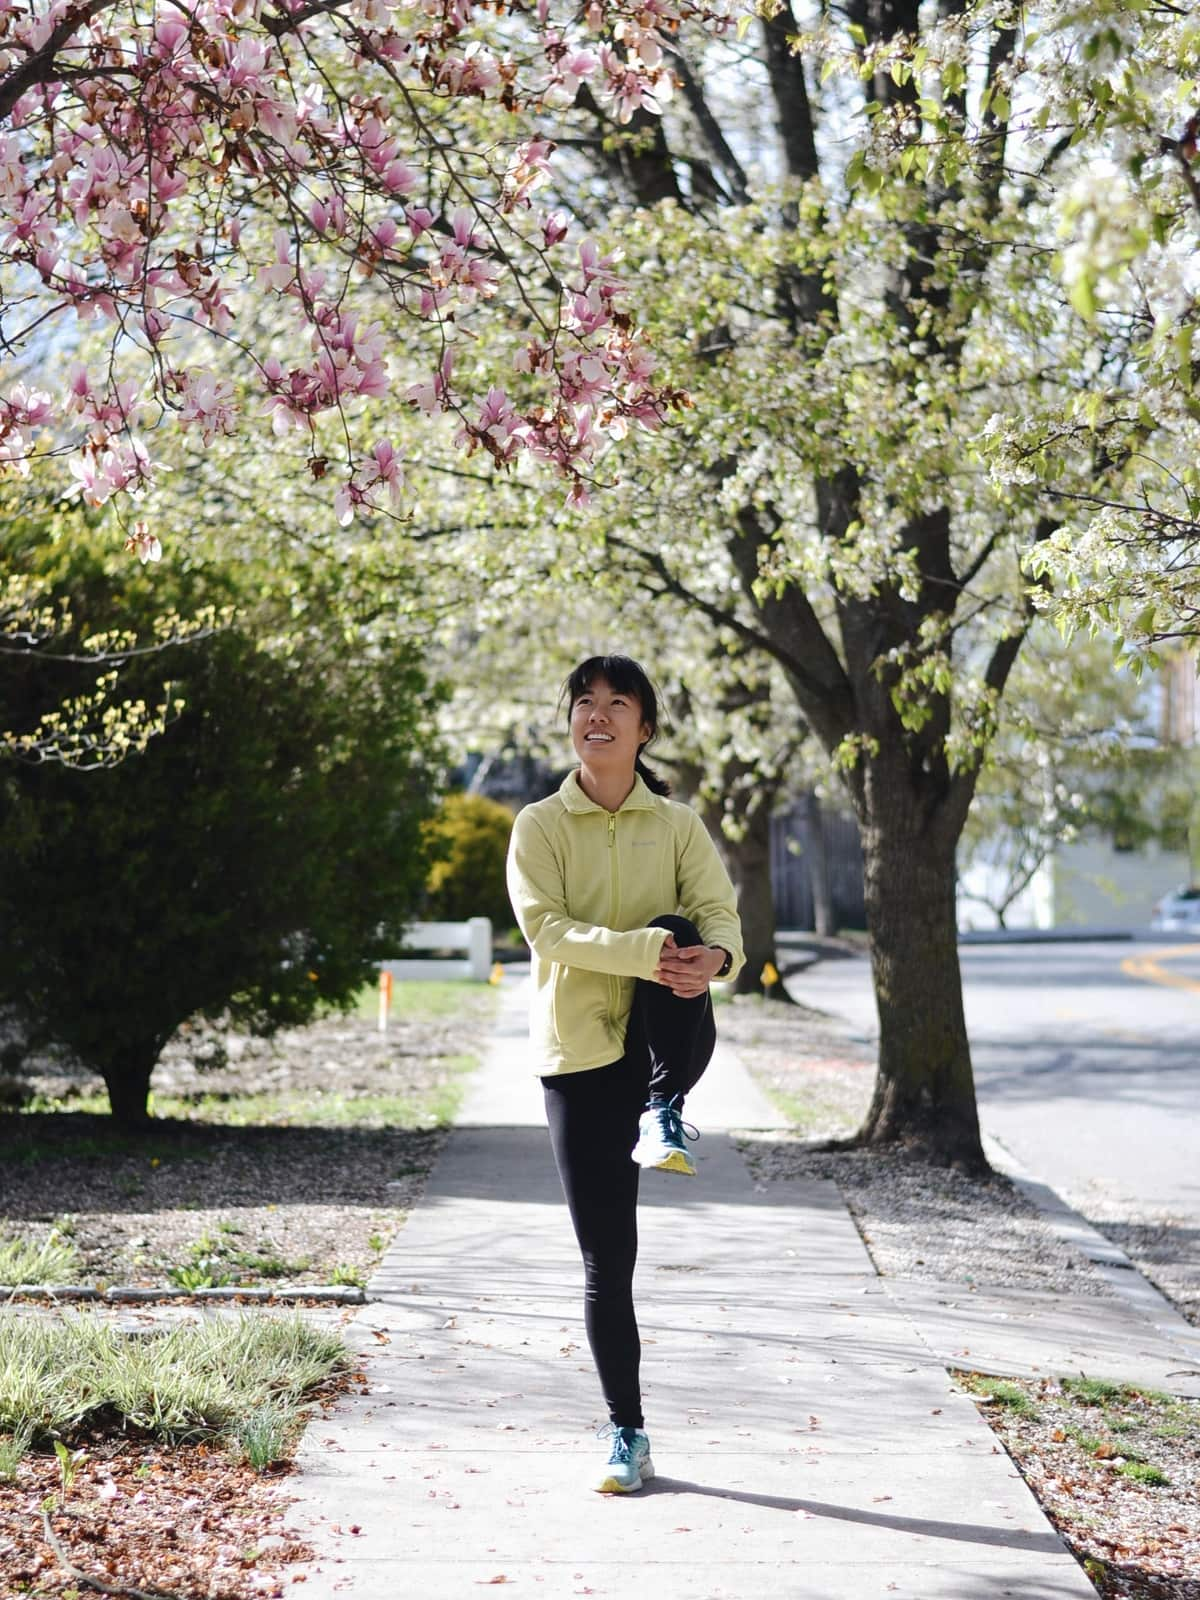 a runner stretching on a sidewalk lined with flowering spring trees